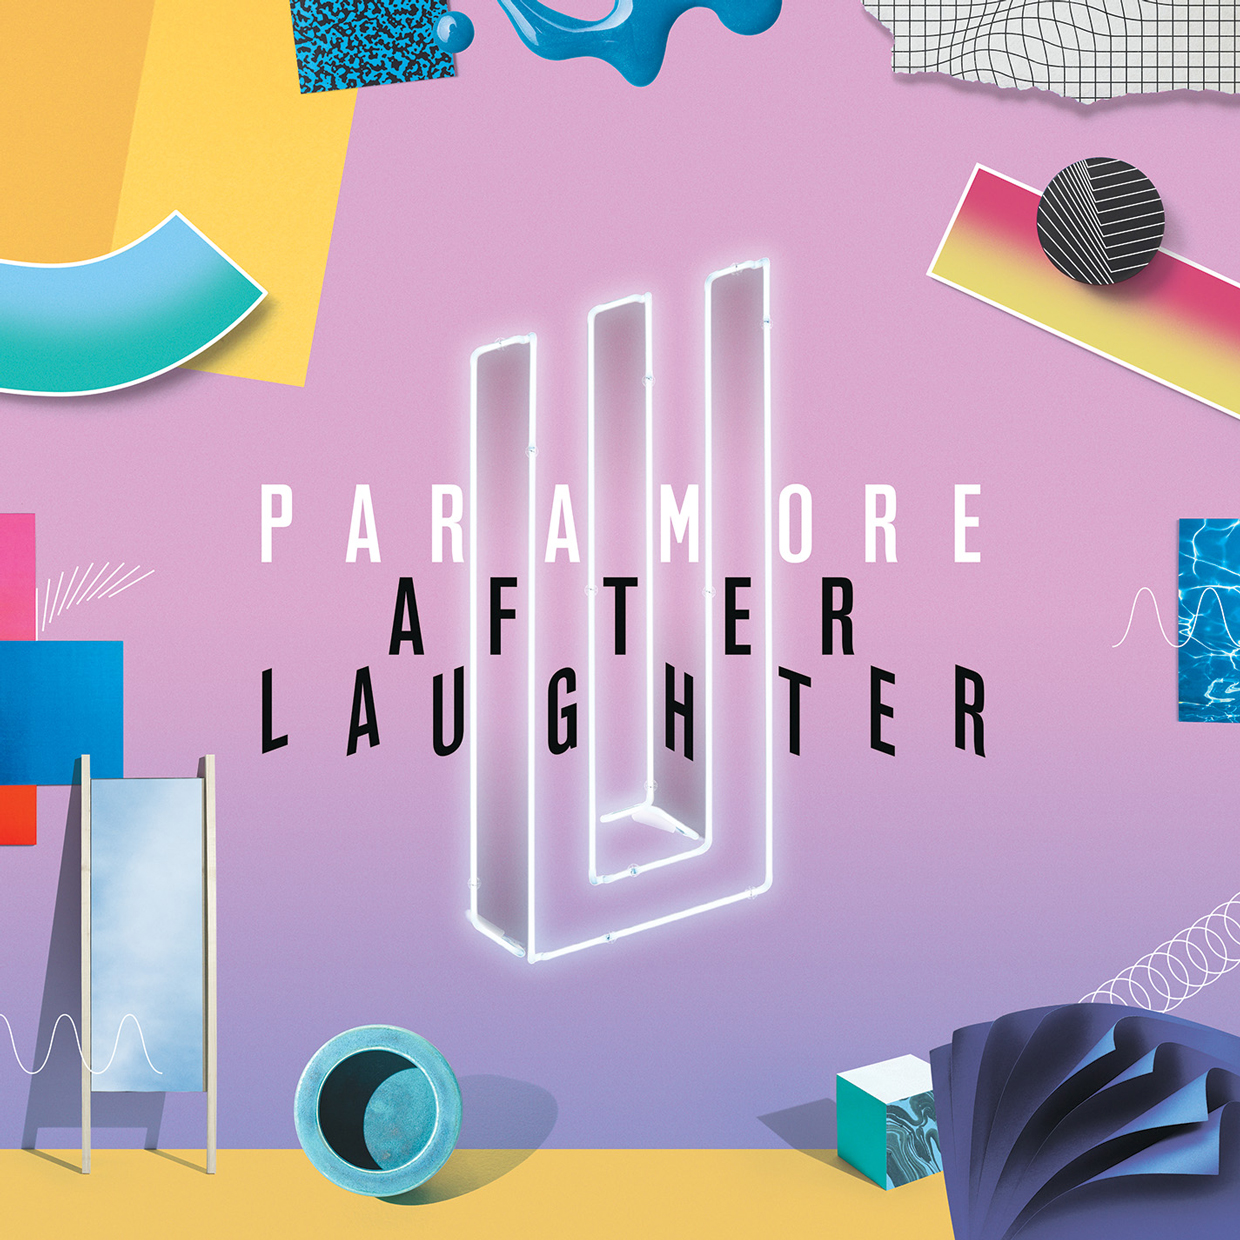 paramore-after-laughter-album